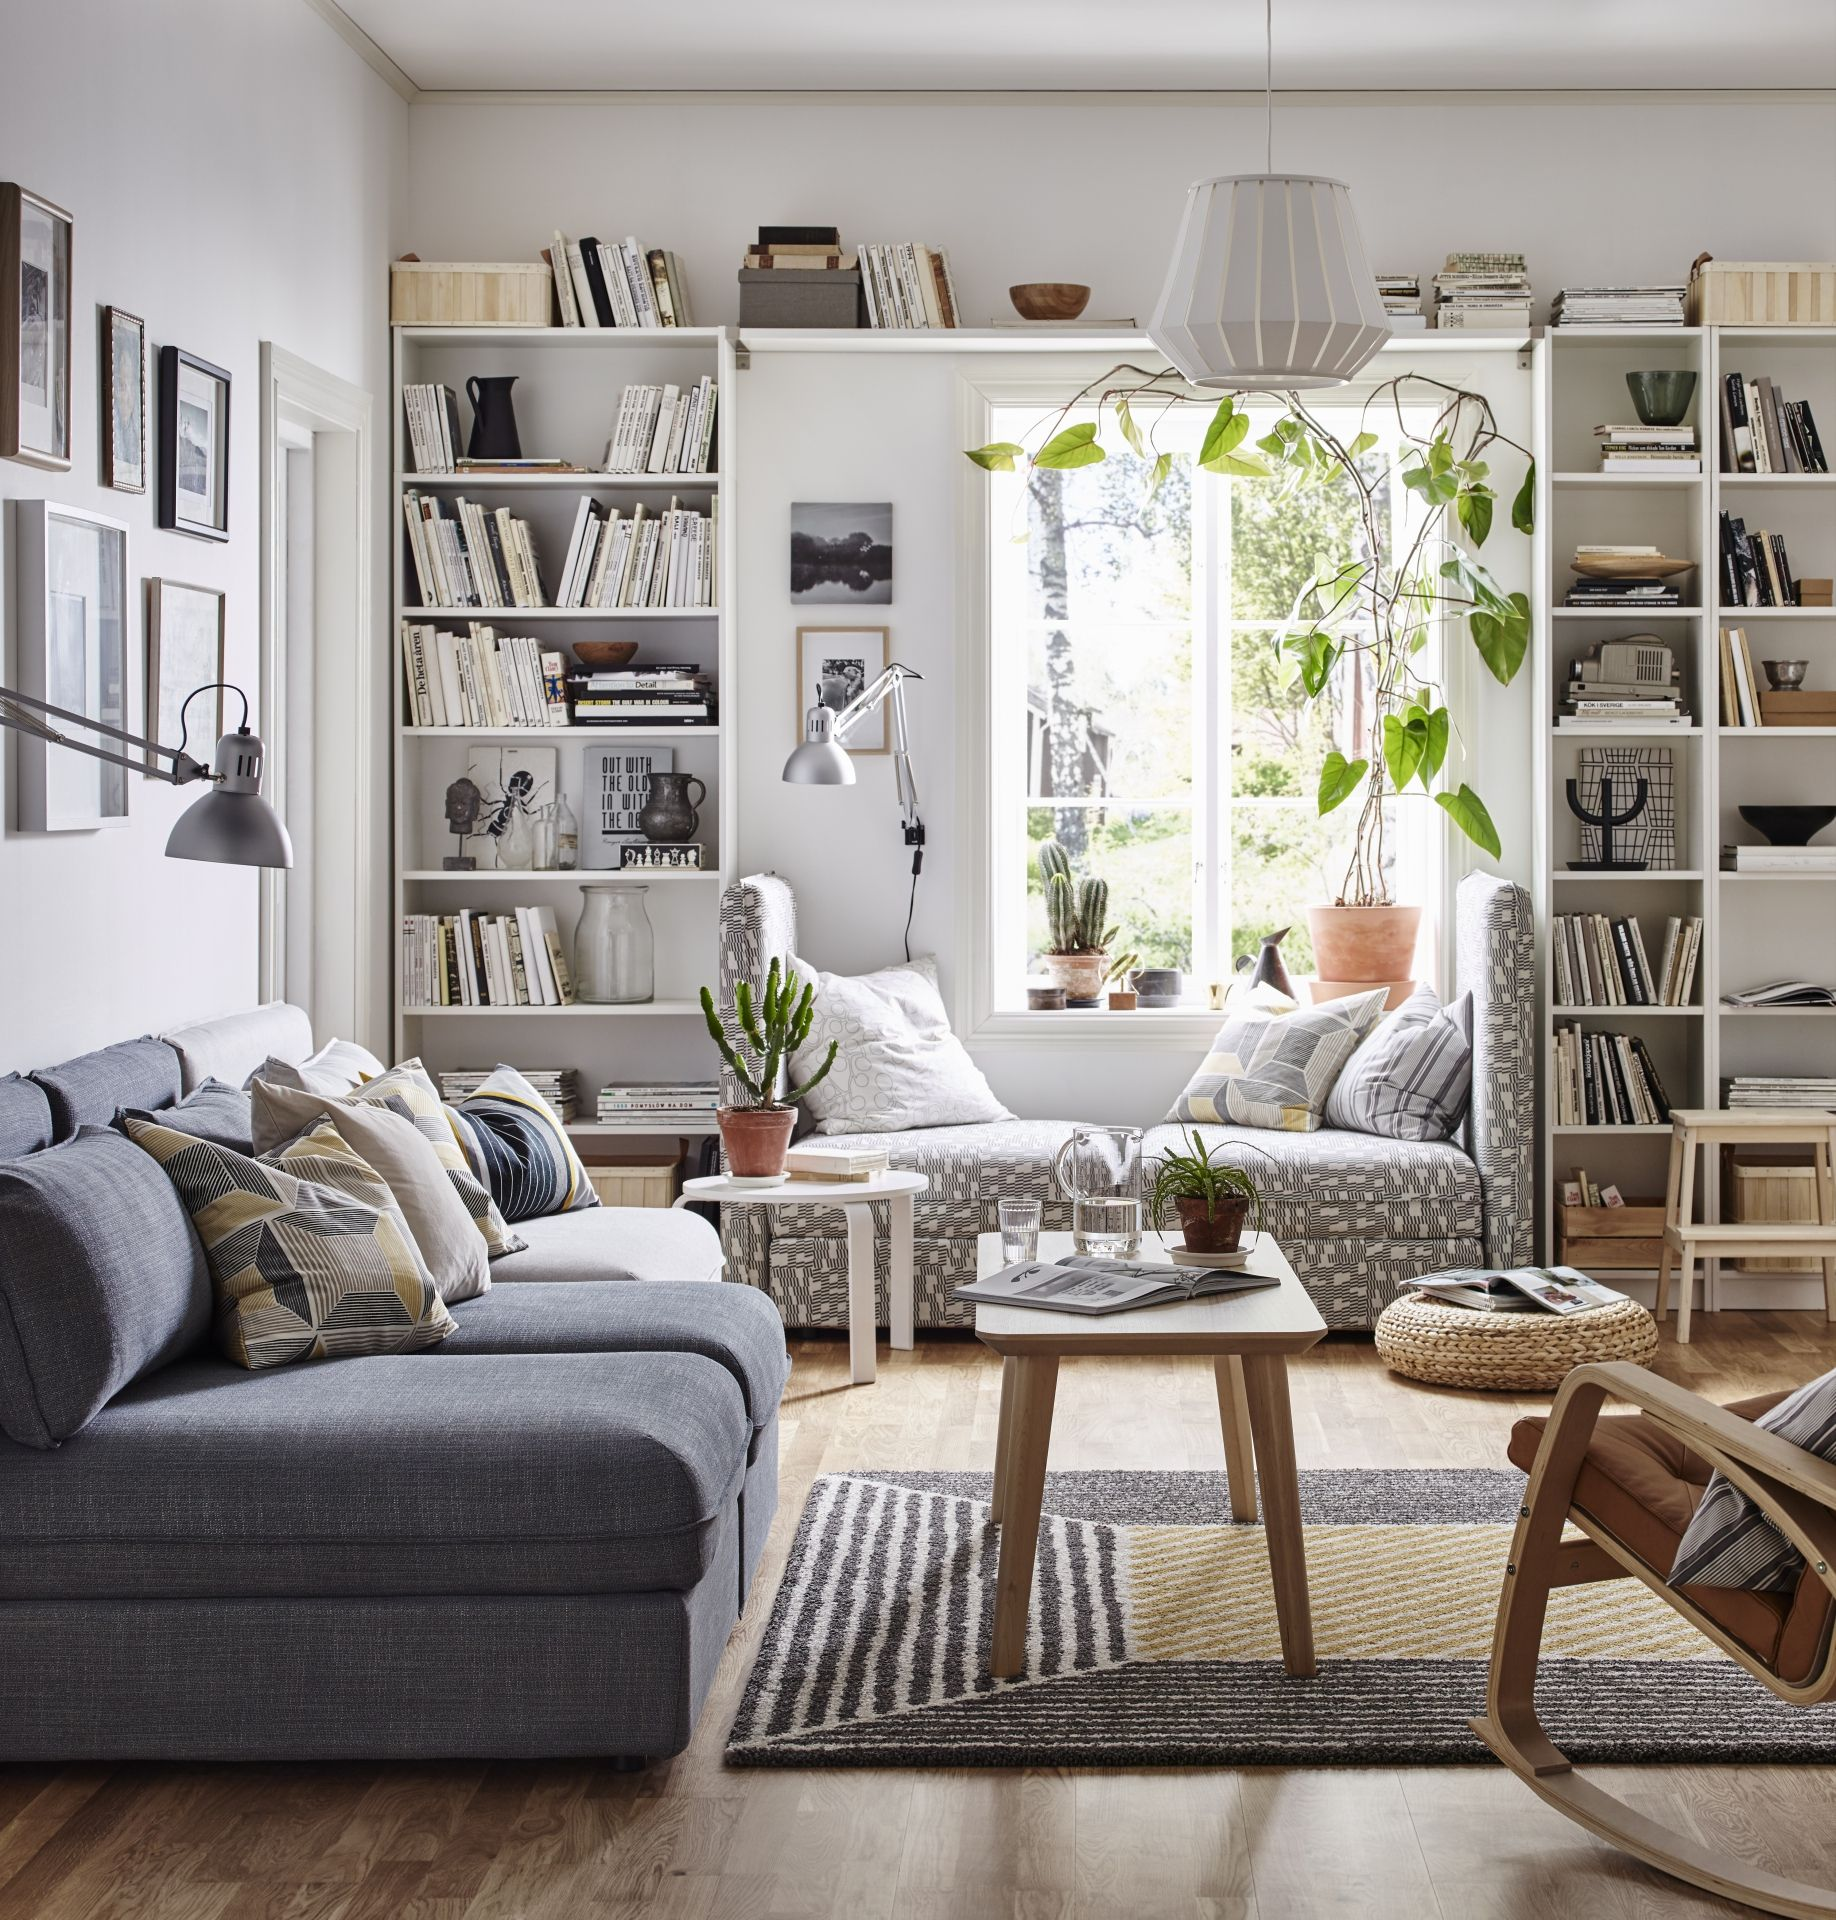 Billy boekenkast ikea ikeanederland inspiratie for Small living room ideas ikea